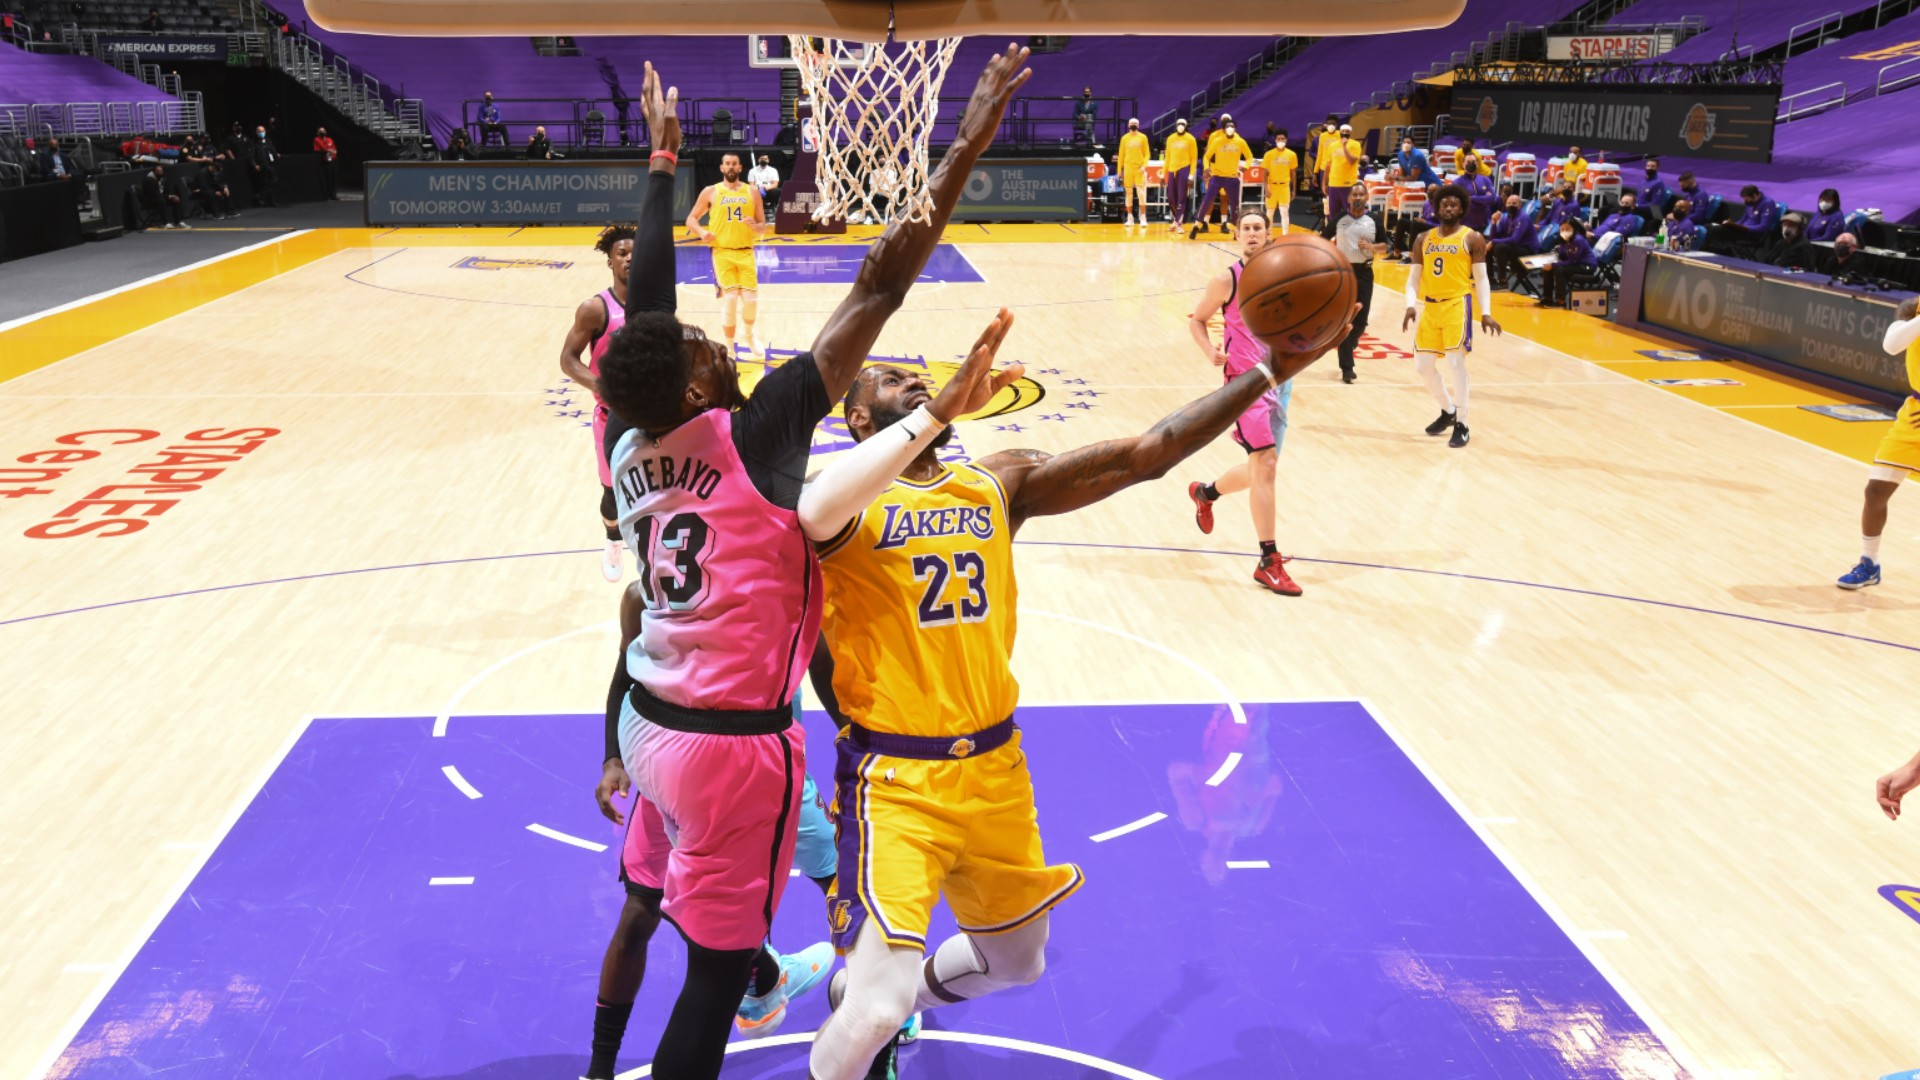 Heat sizzle as Miami pip LeBron's Lakers, Hornets buzz past Curry-less Warriors